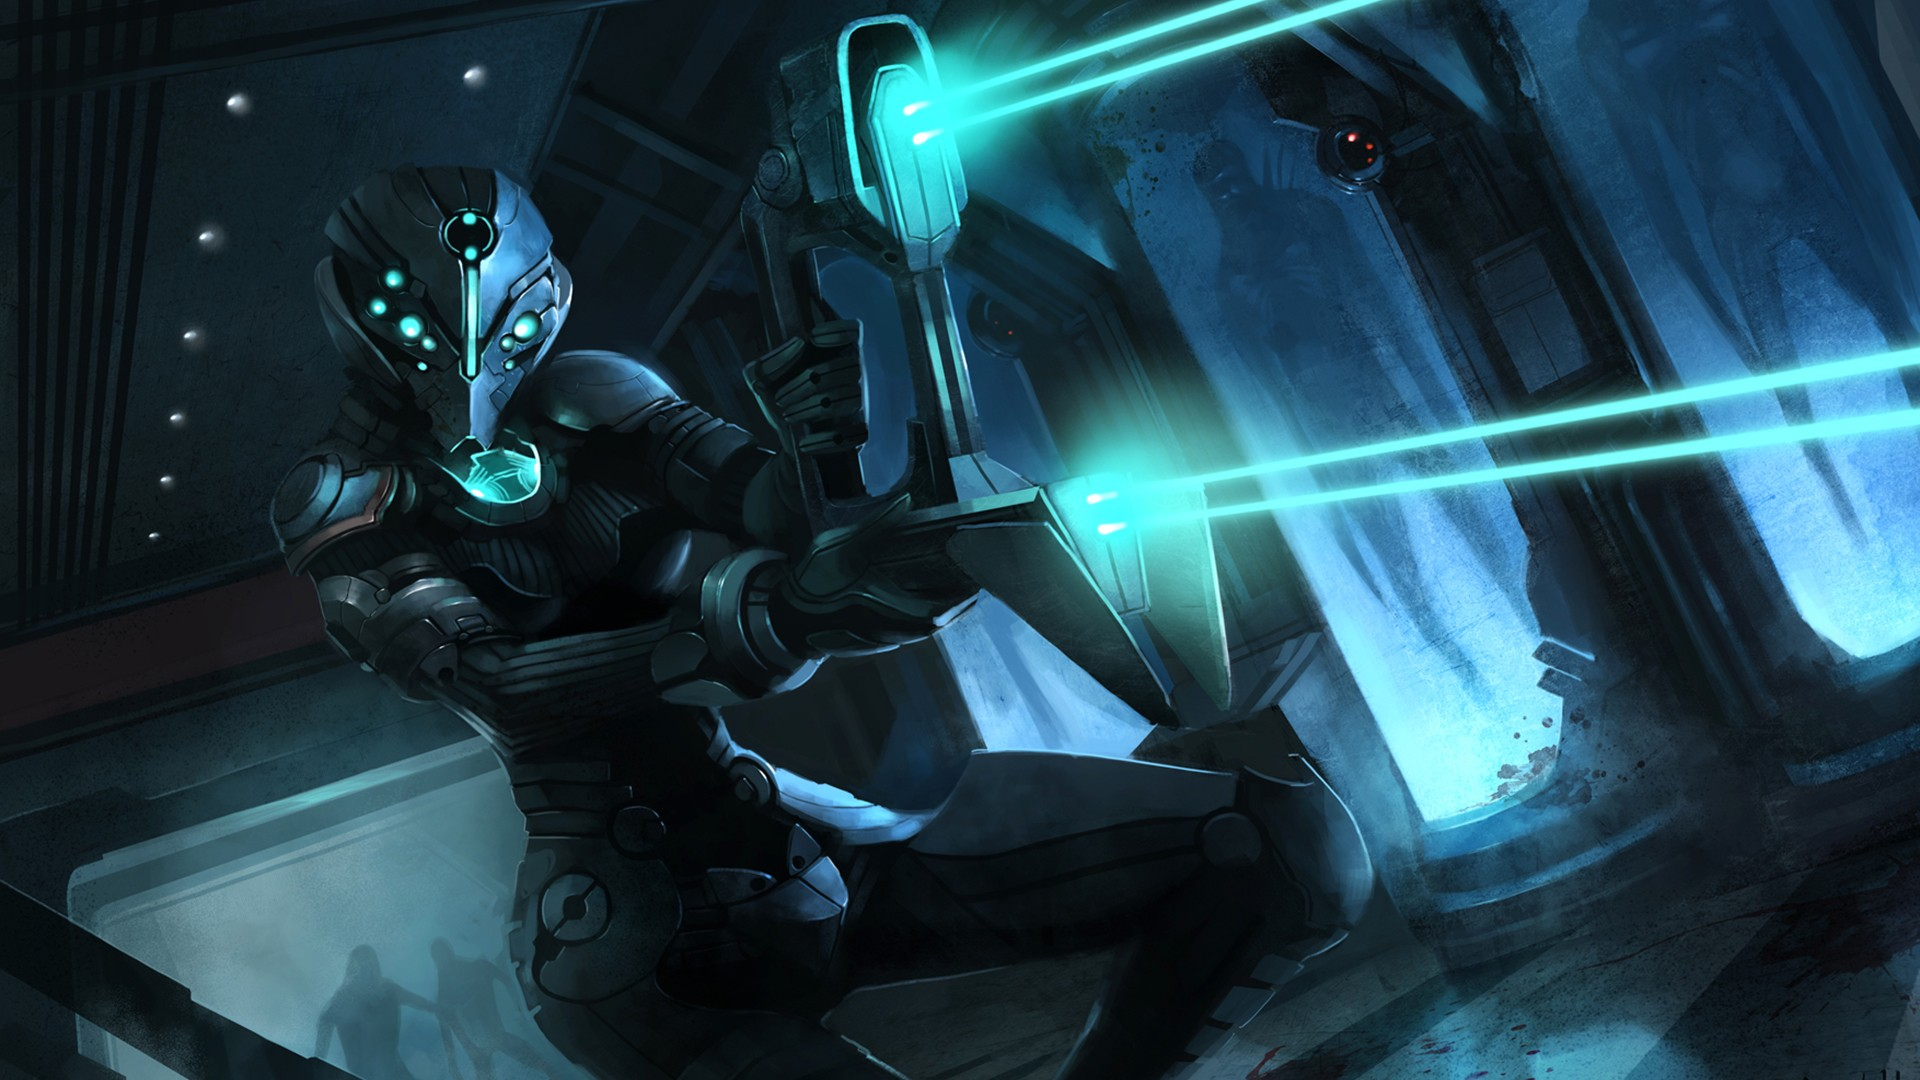 Dead Space Backgrounds, Pictures, Images